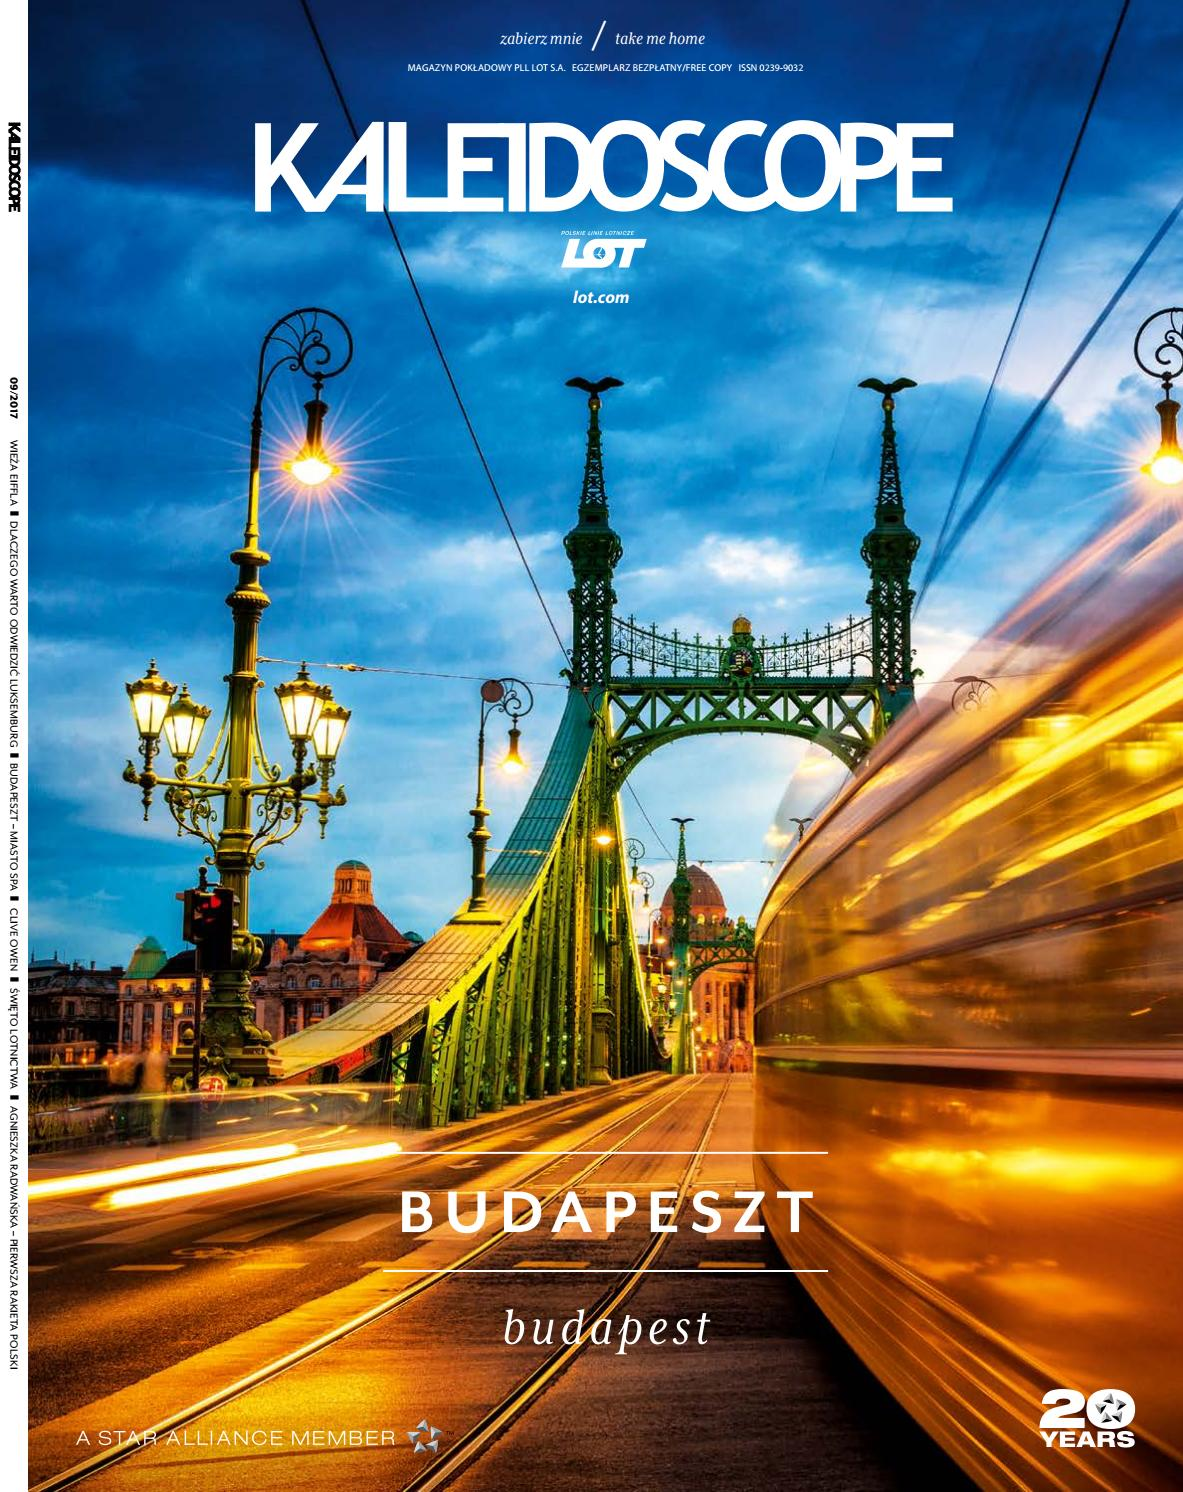 e3d6fb53986f Kaleidoscope September 2017 by LOT Polish Airlines - issuu